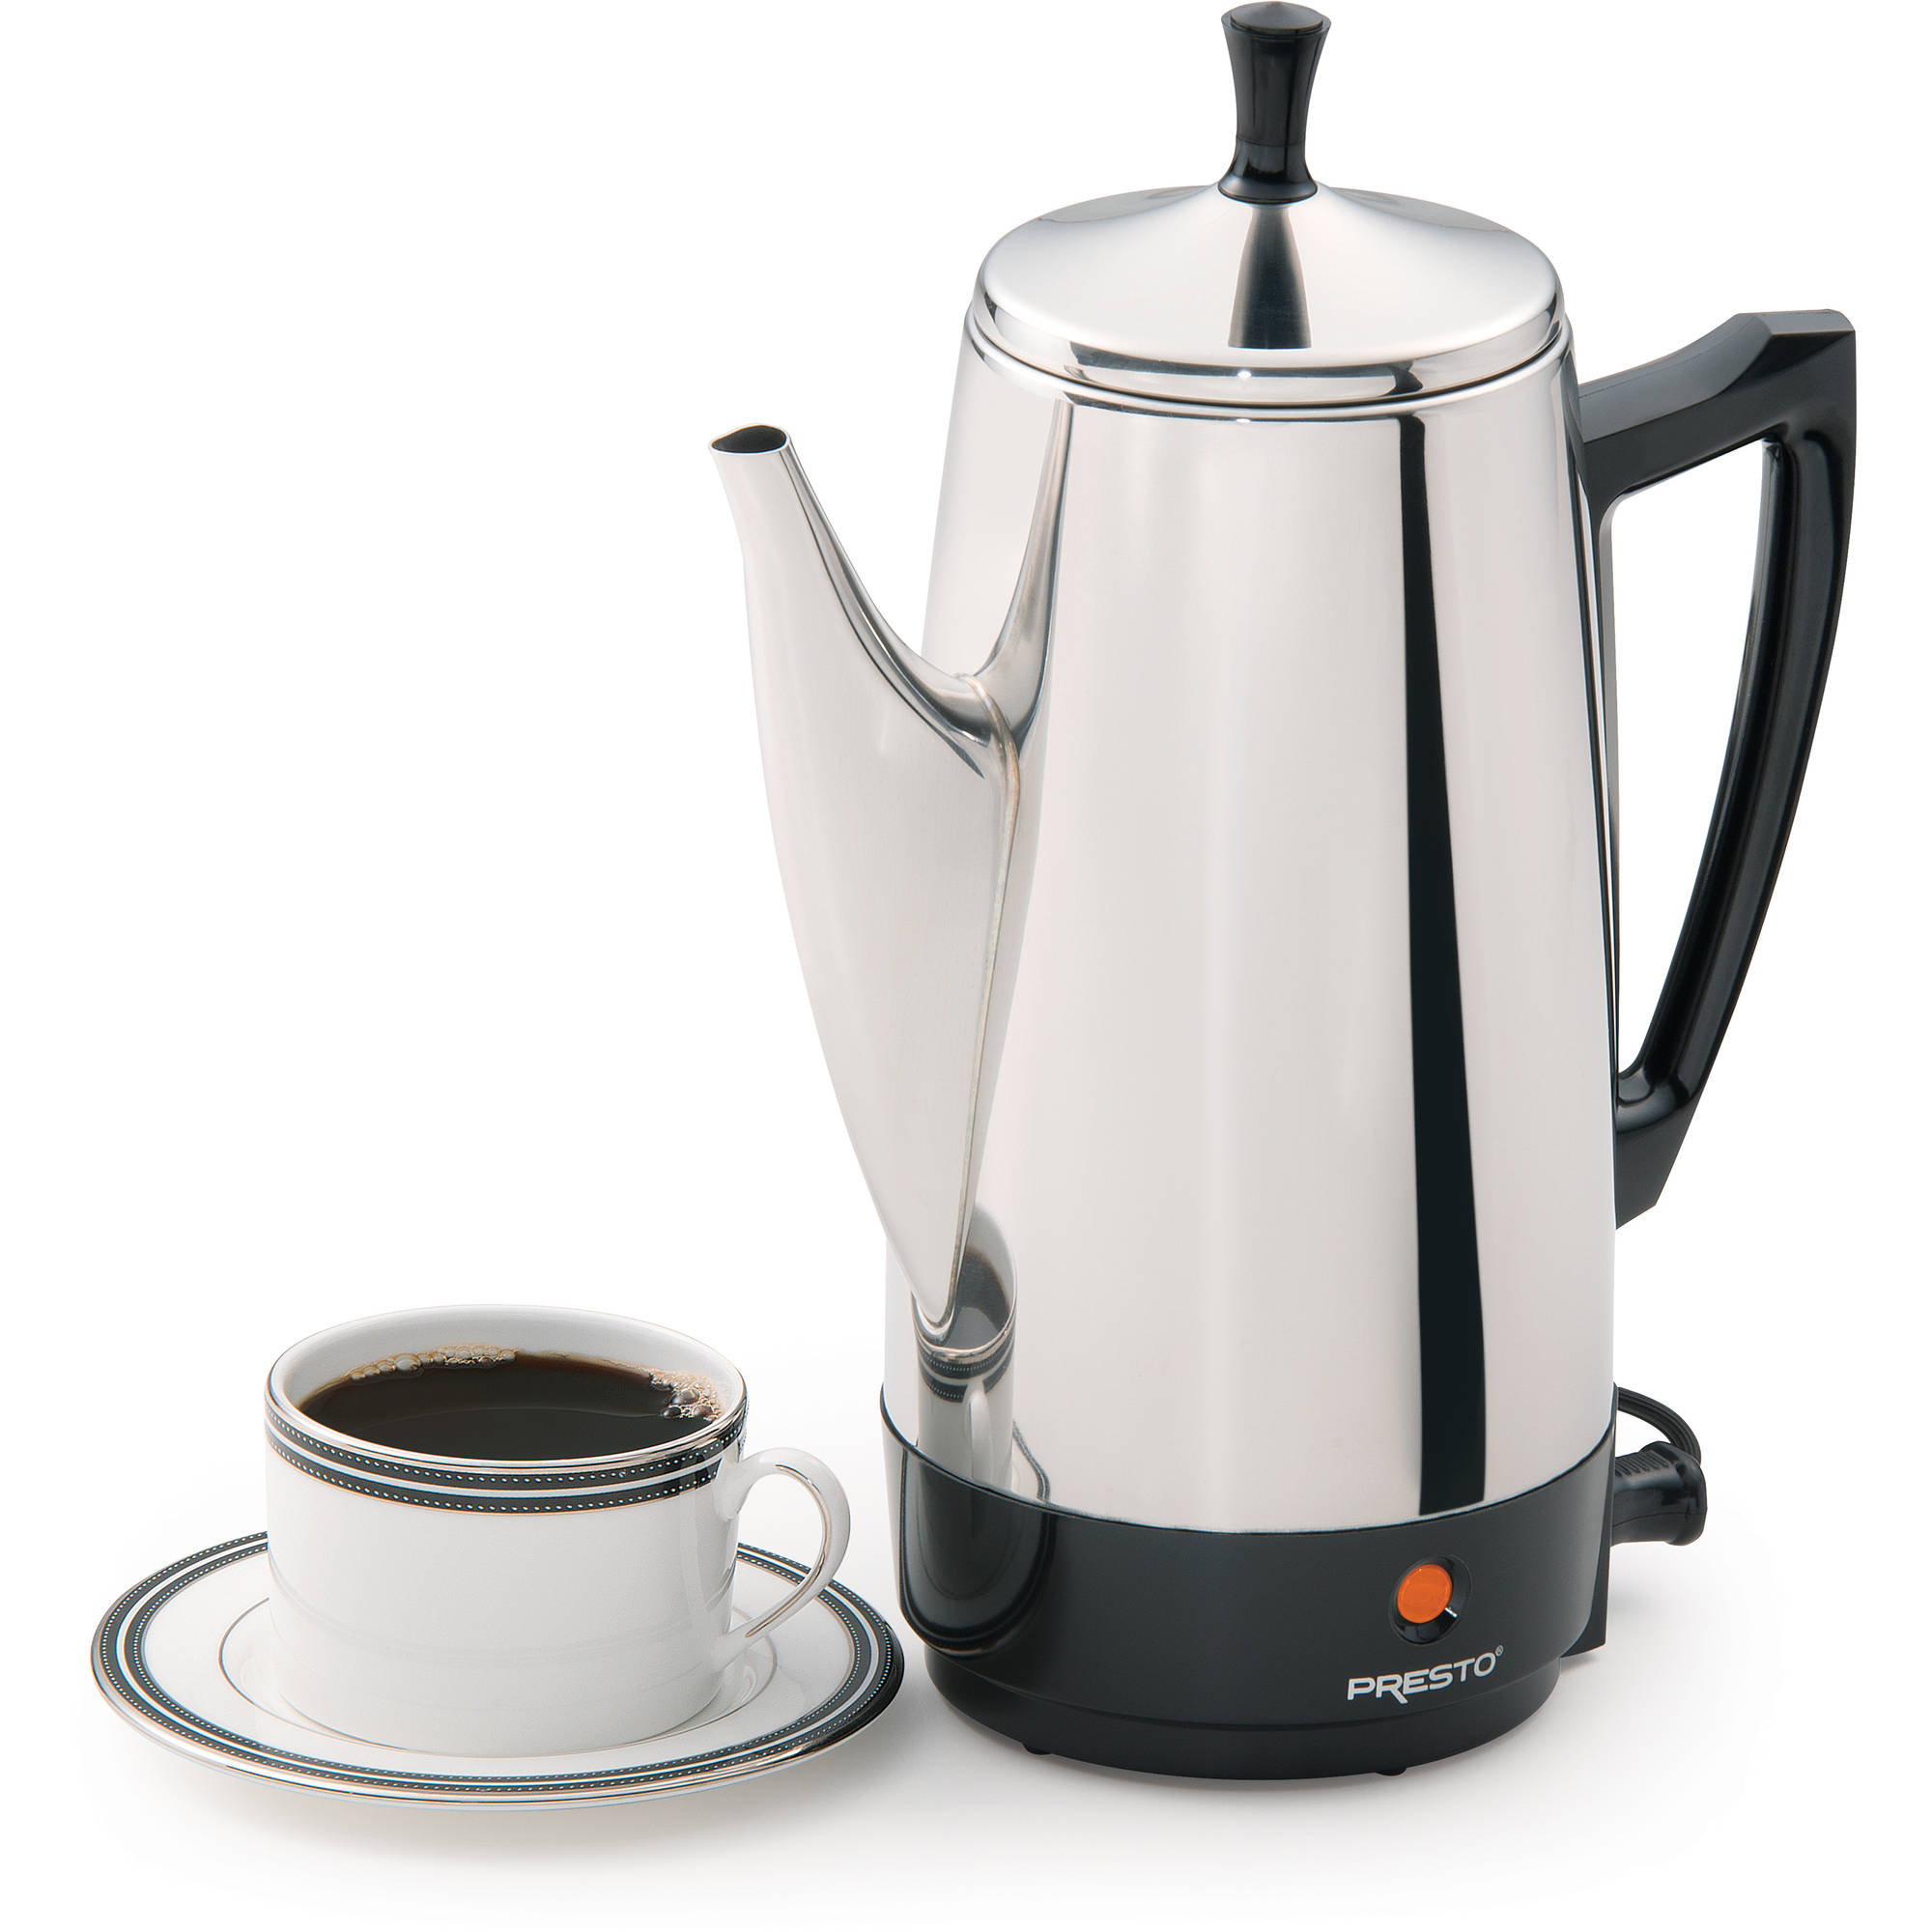 Presto 12-Cup Stainless Steel Coffeemaker